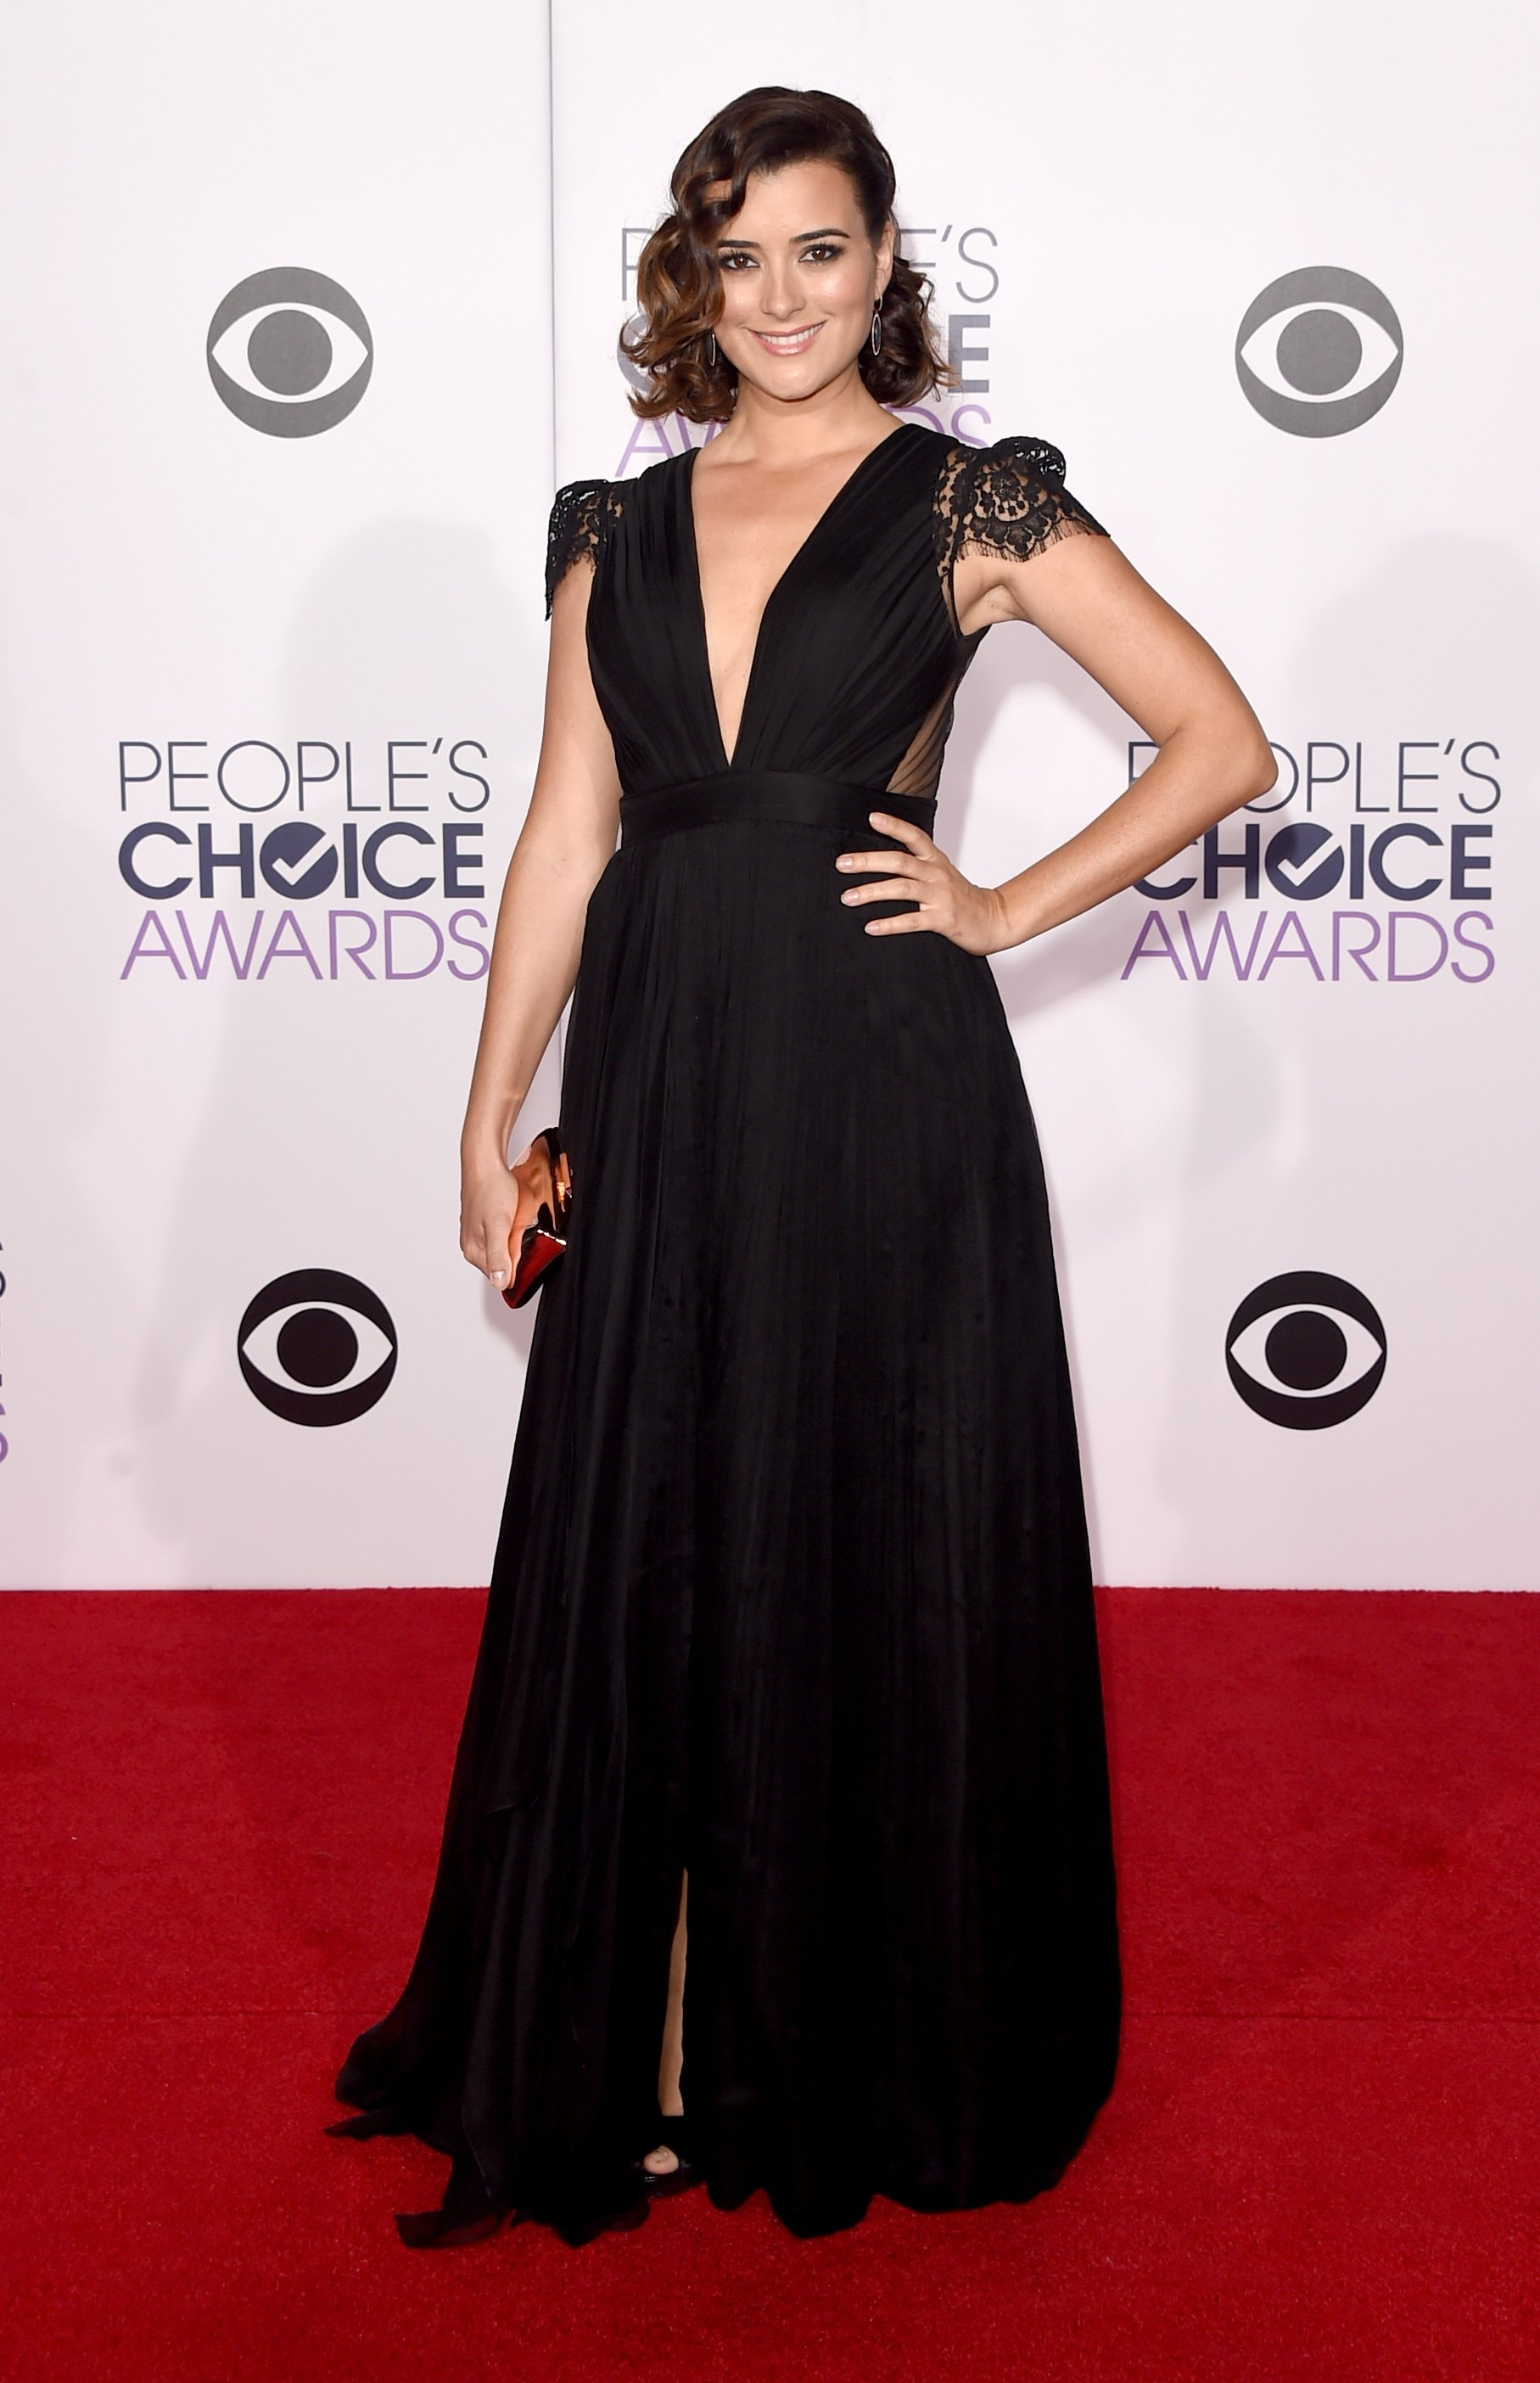 Cote de Pablo at the People's Choice Awards | Photo: Getty Images